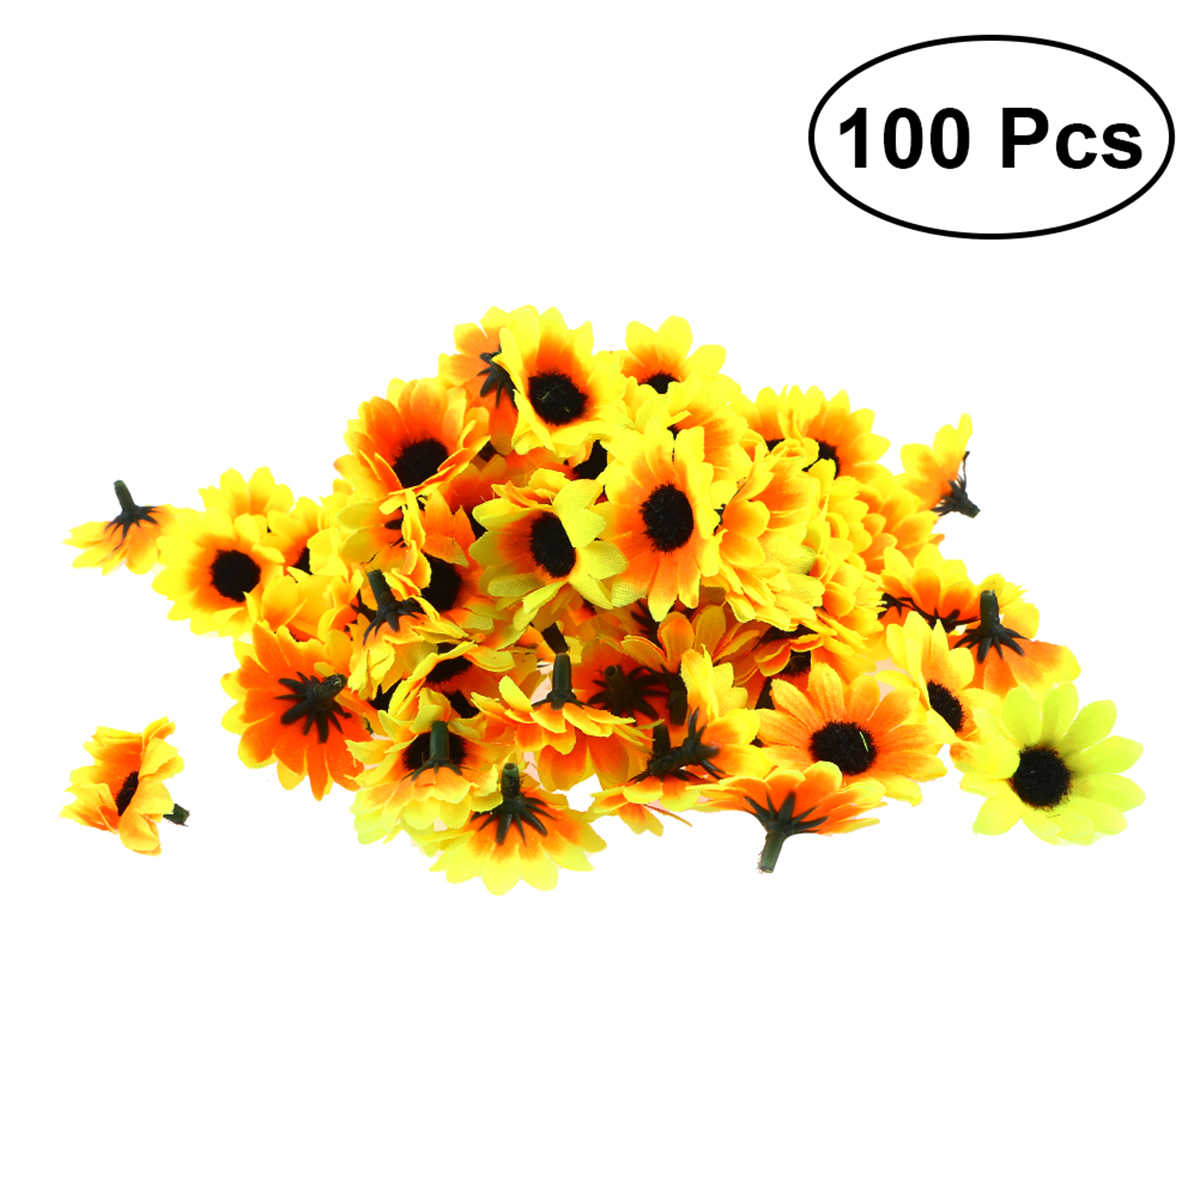 100pcs Lifelike Mini Artificial Flowers Silk Sunflowers Heads Wedding Decoration Party Fake Scrapbooking Floral Home Accessories